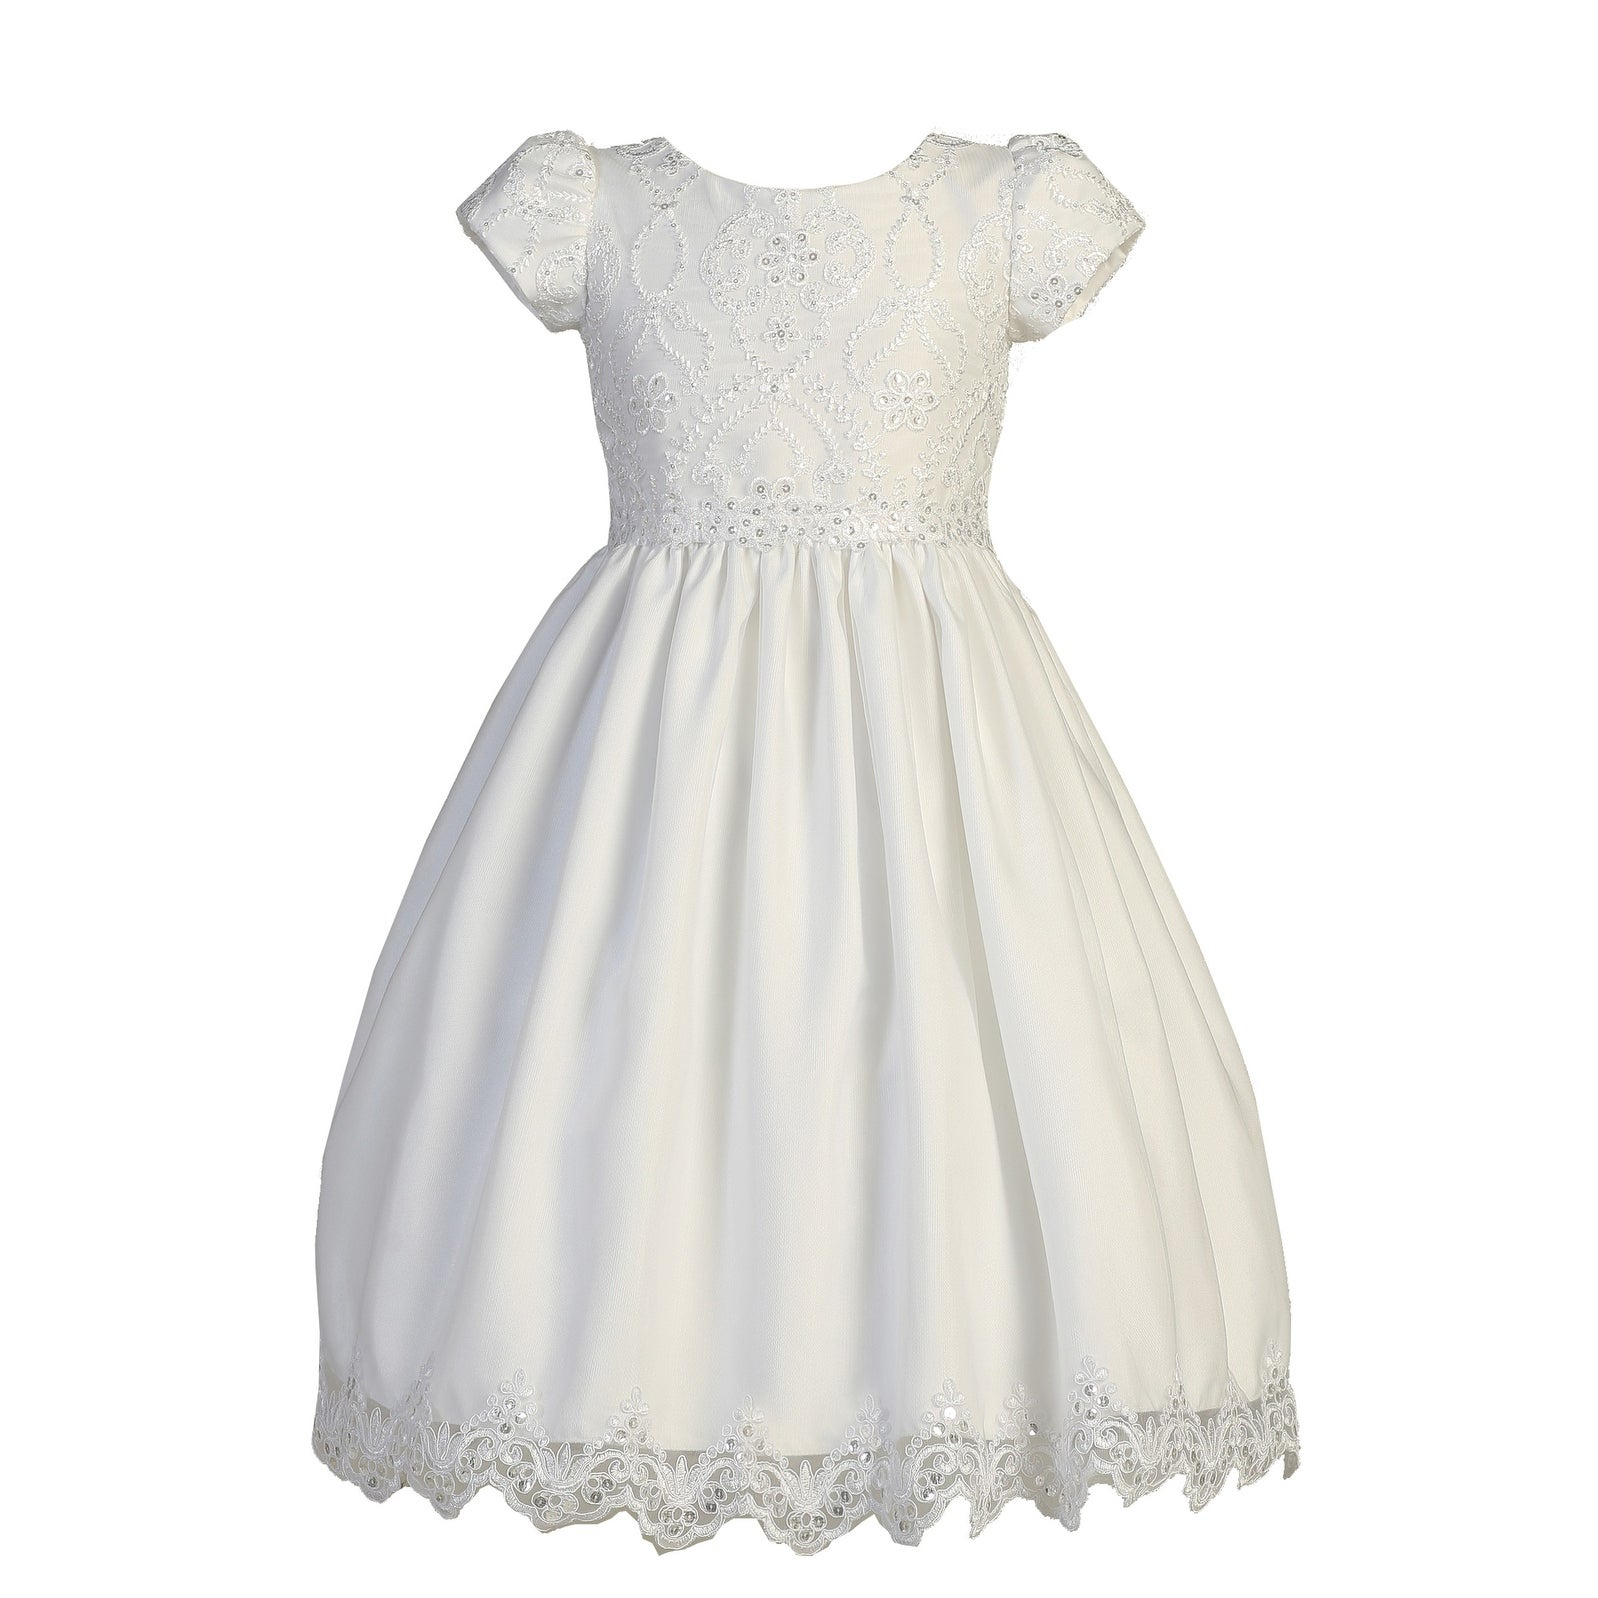 Girls White Short Sleeve Embroidered Lace Plus Size Communion Dress